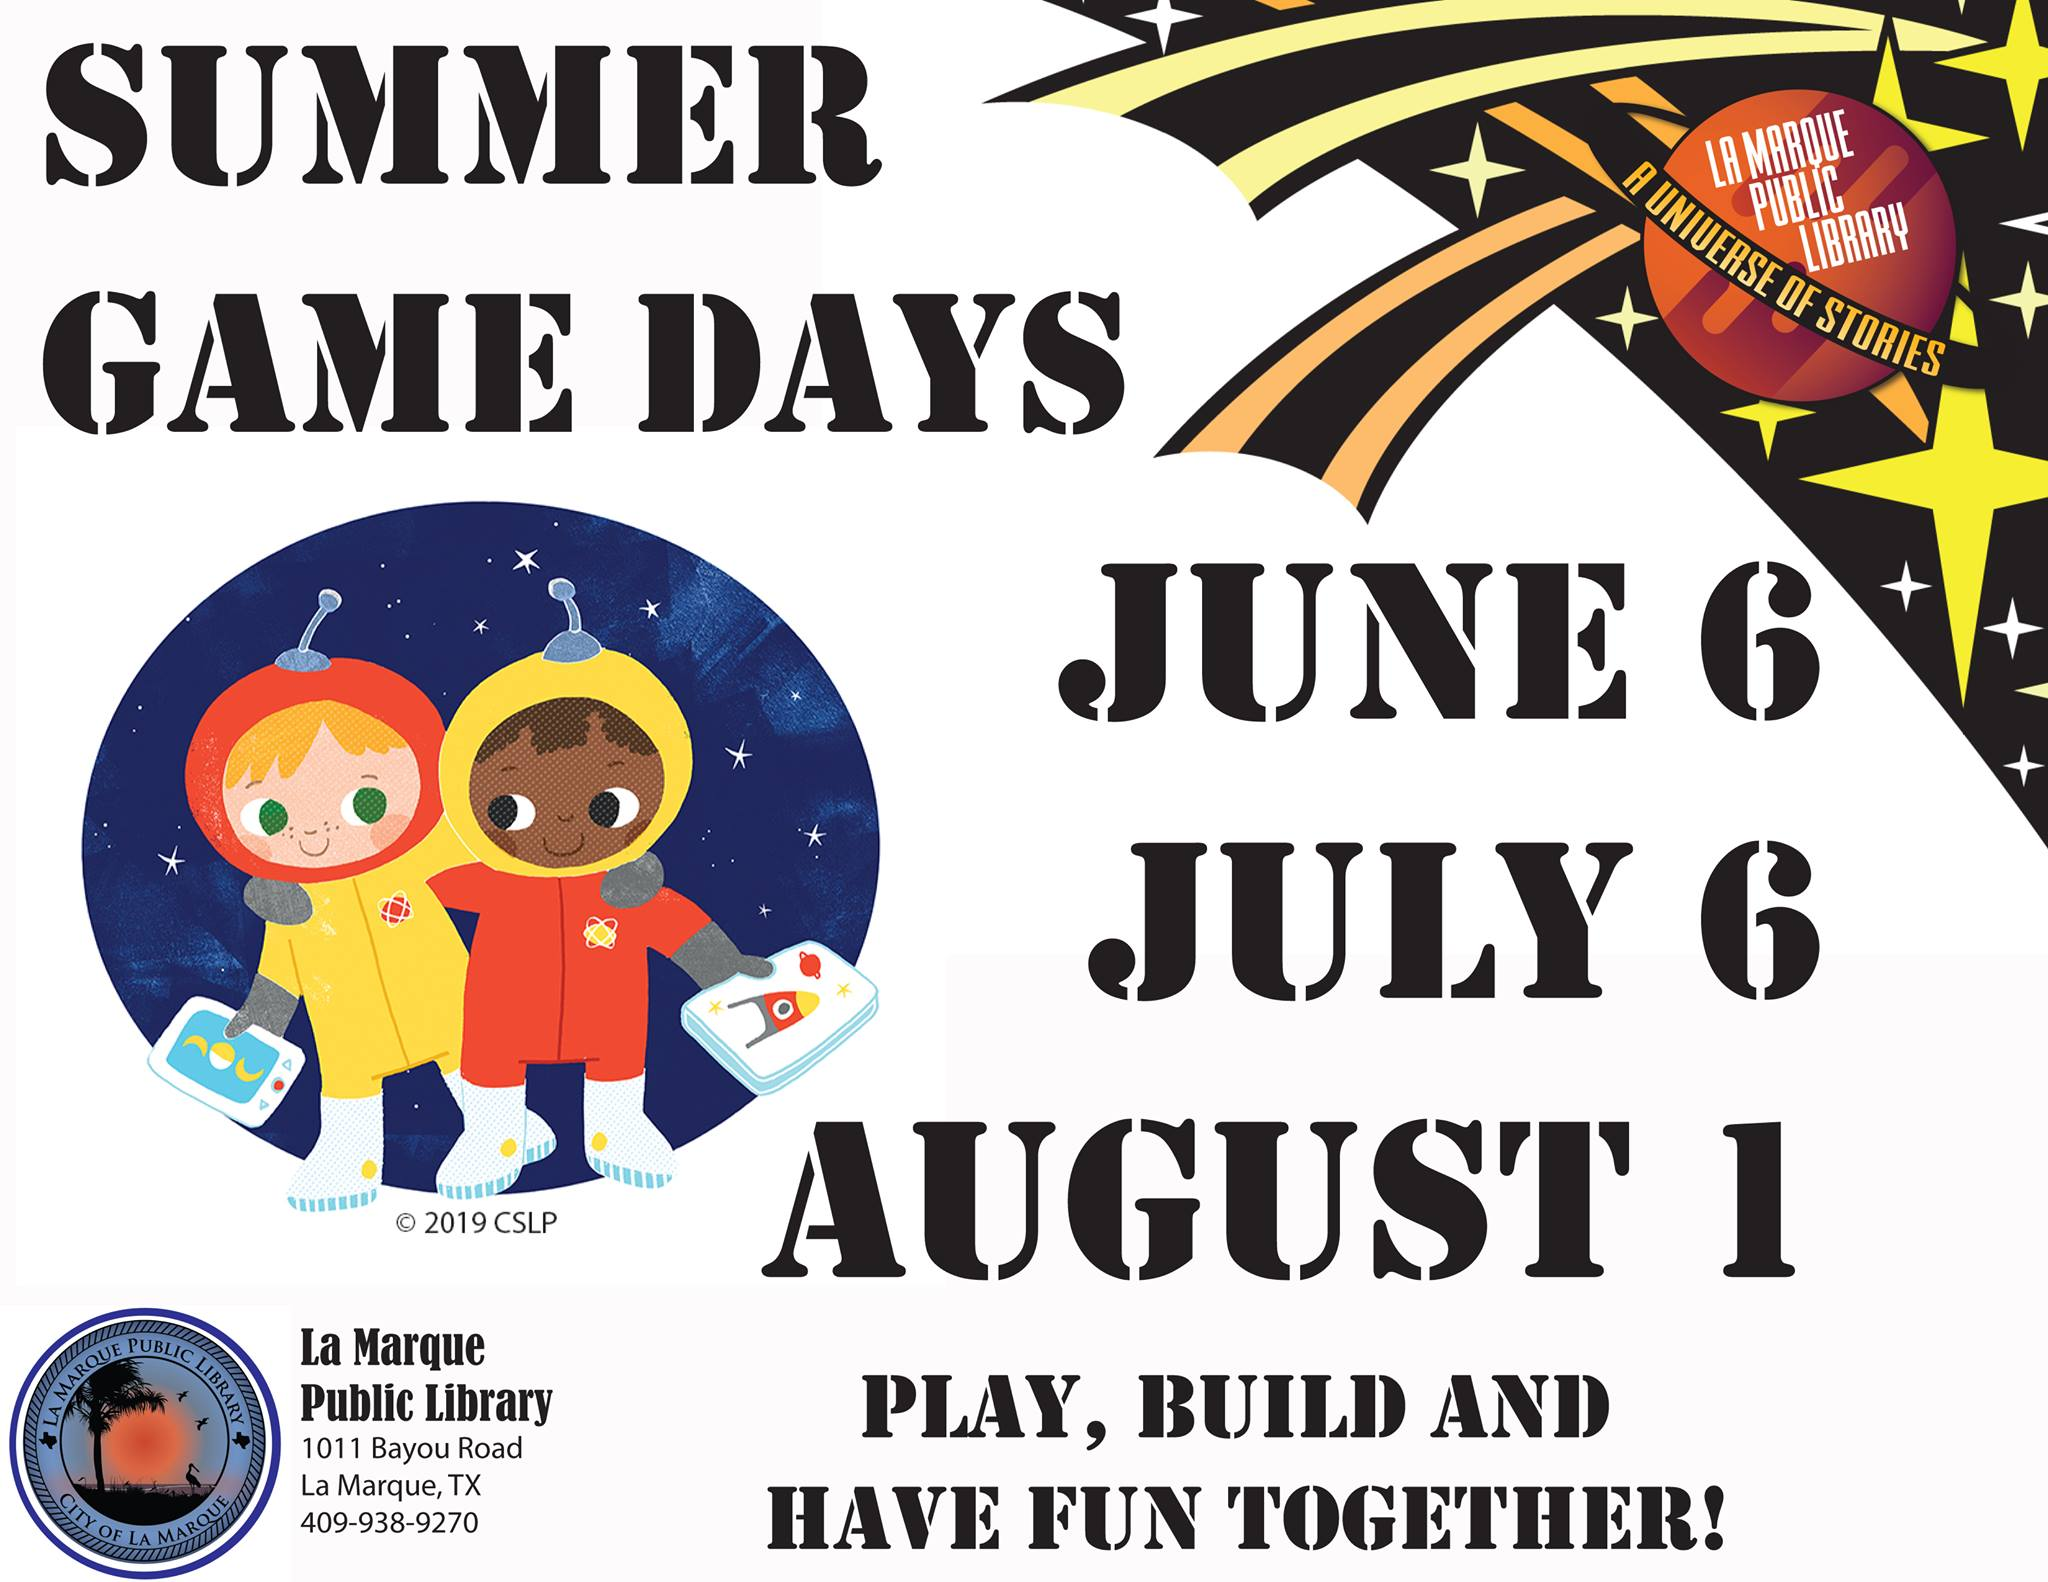 Library Summer Game Days showing dates